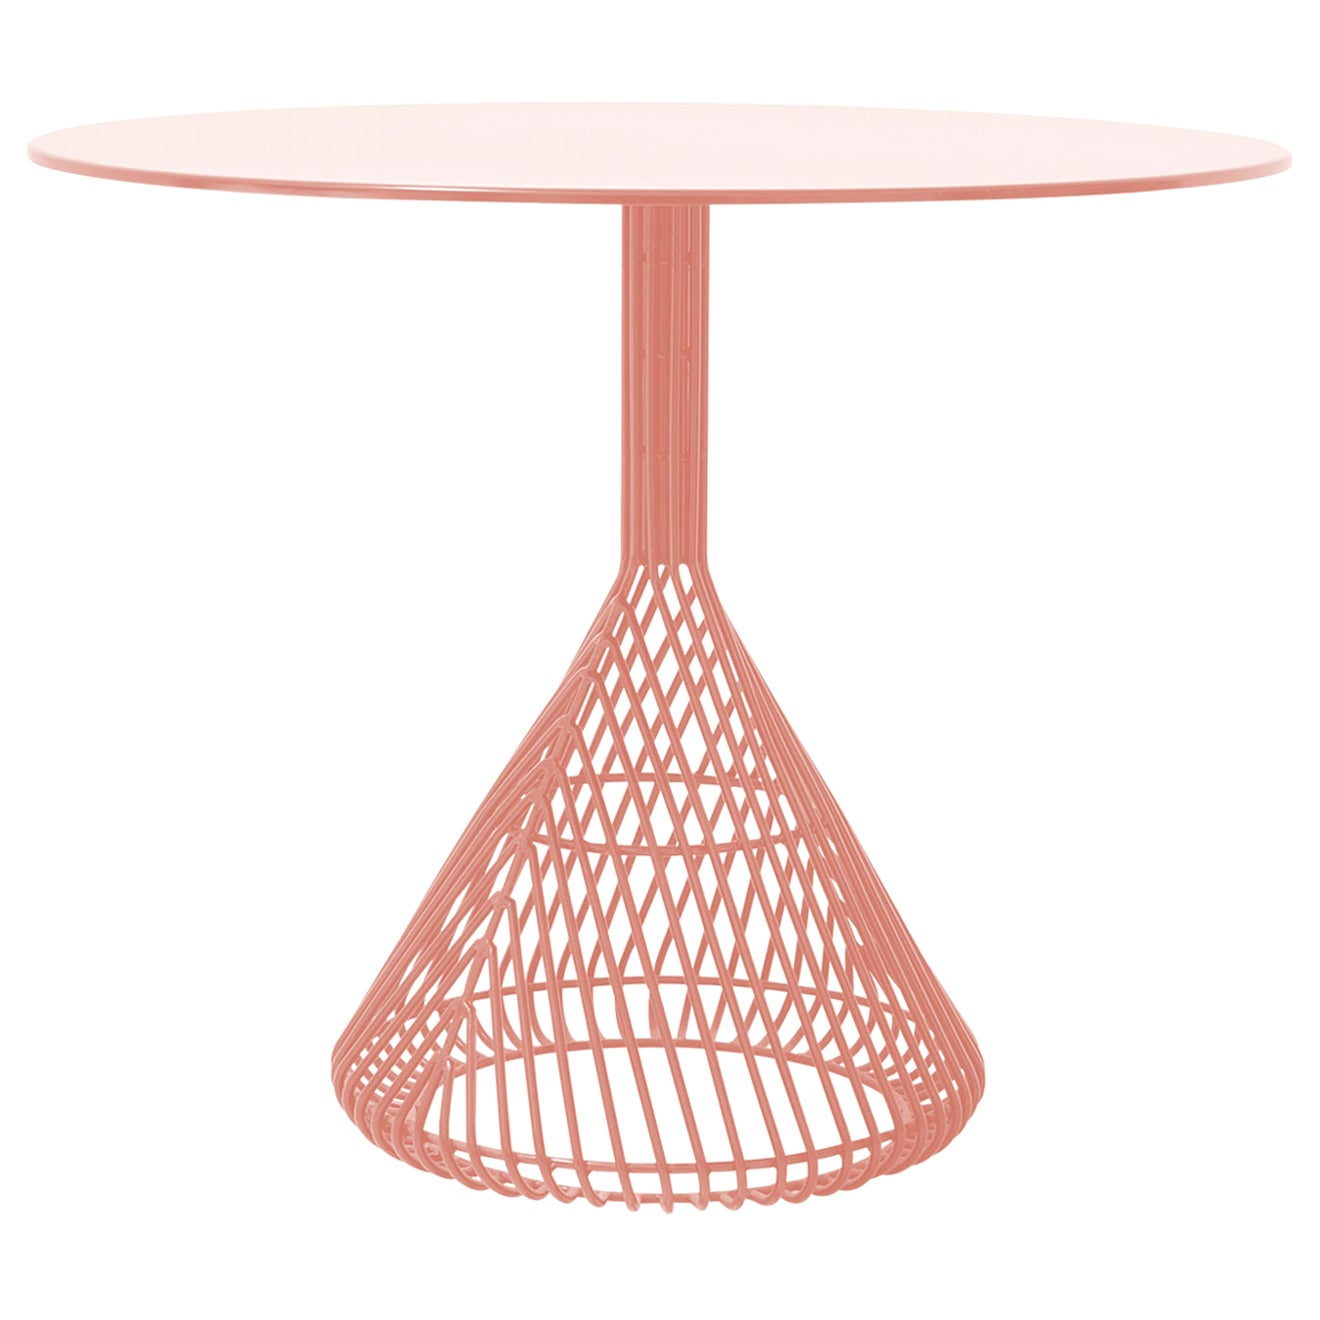 Modern Bistro Table, Wire Dining Table in Peachy Pink with Metal Top